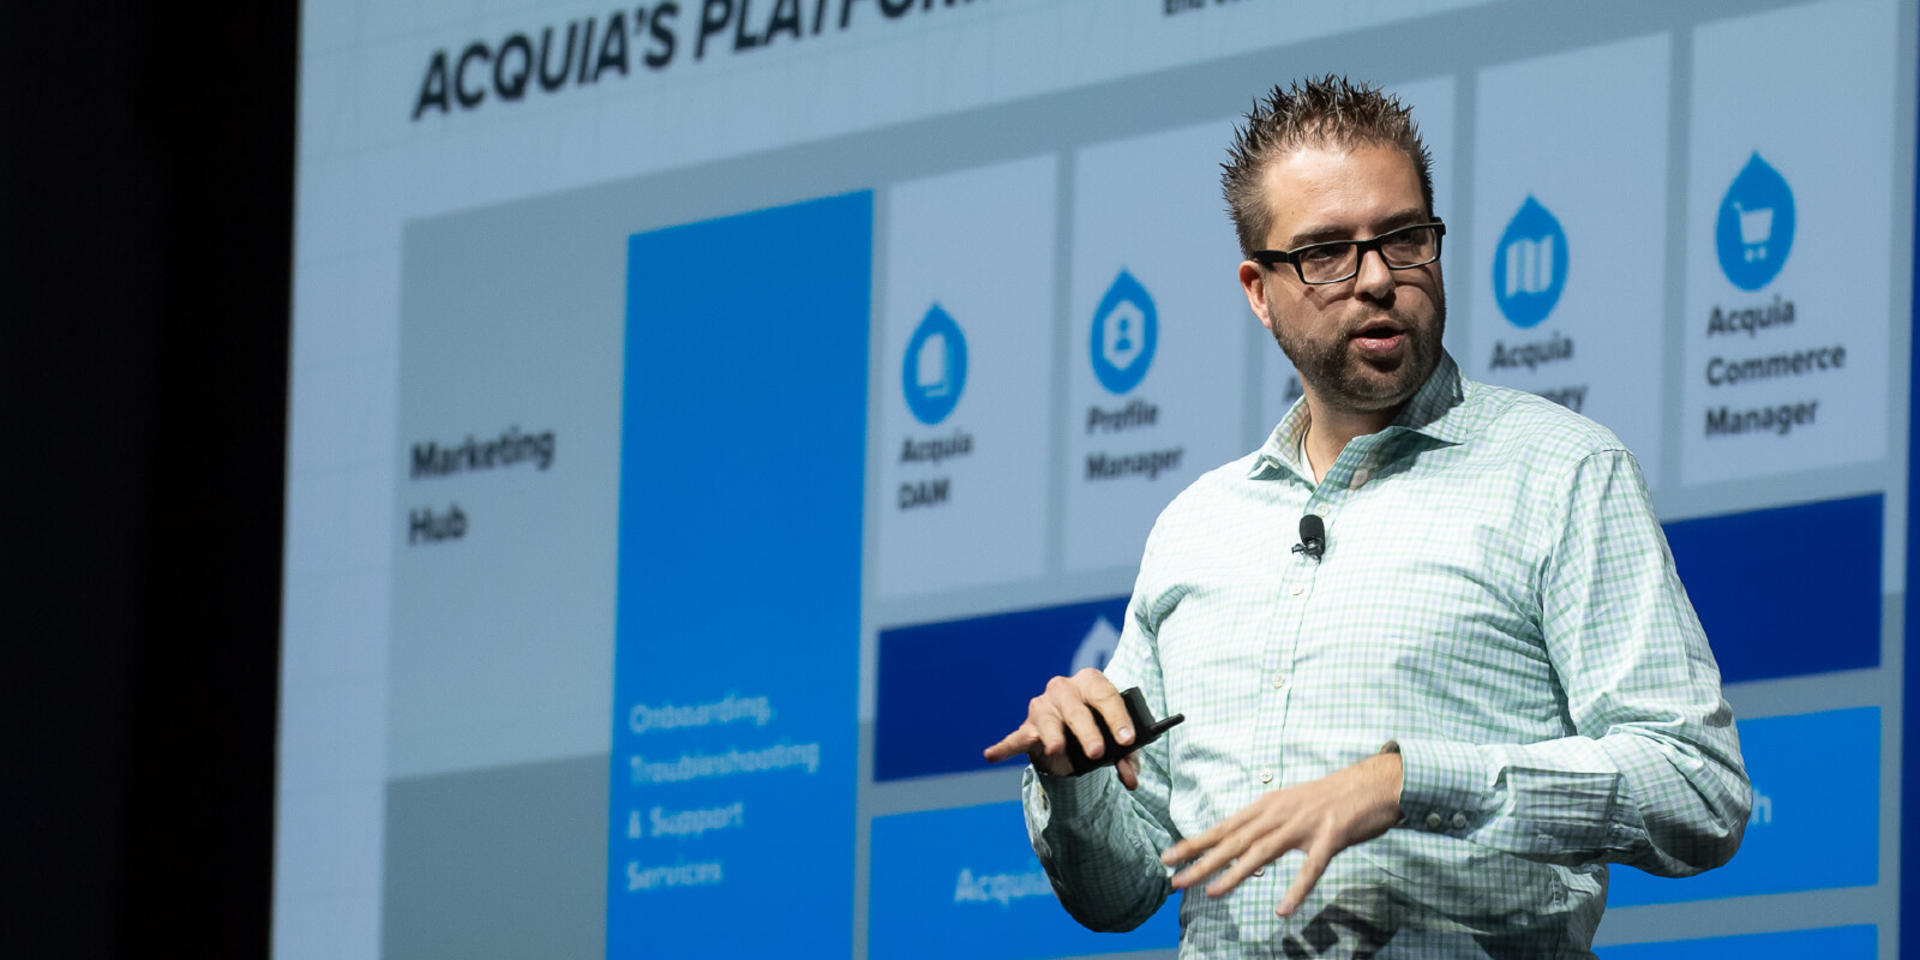 Dries Buytaert | Found of the Drupal Project / CTO at Acquia